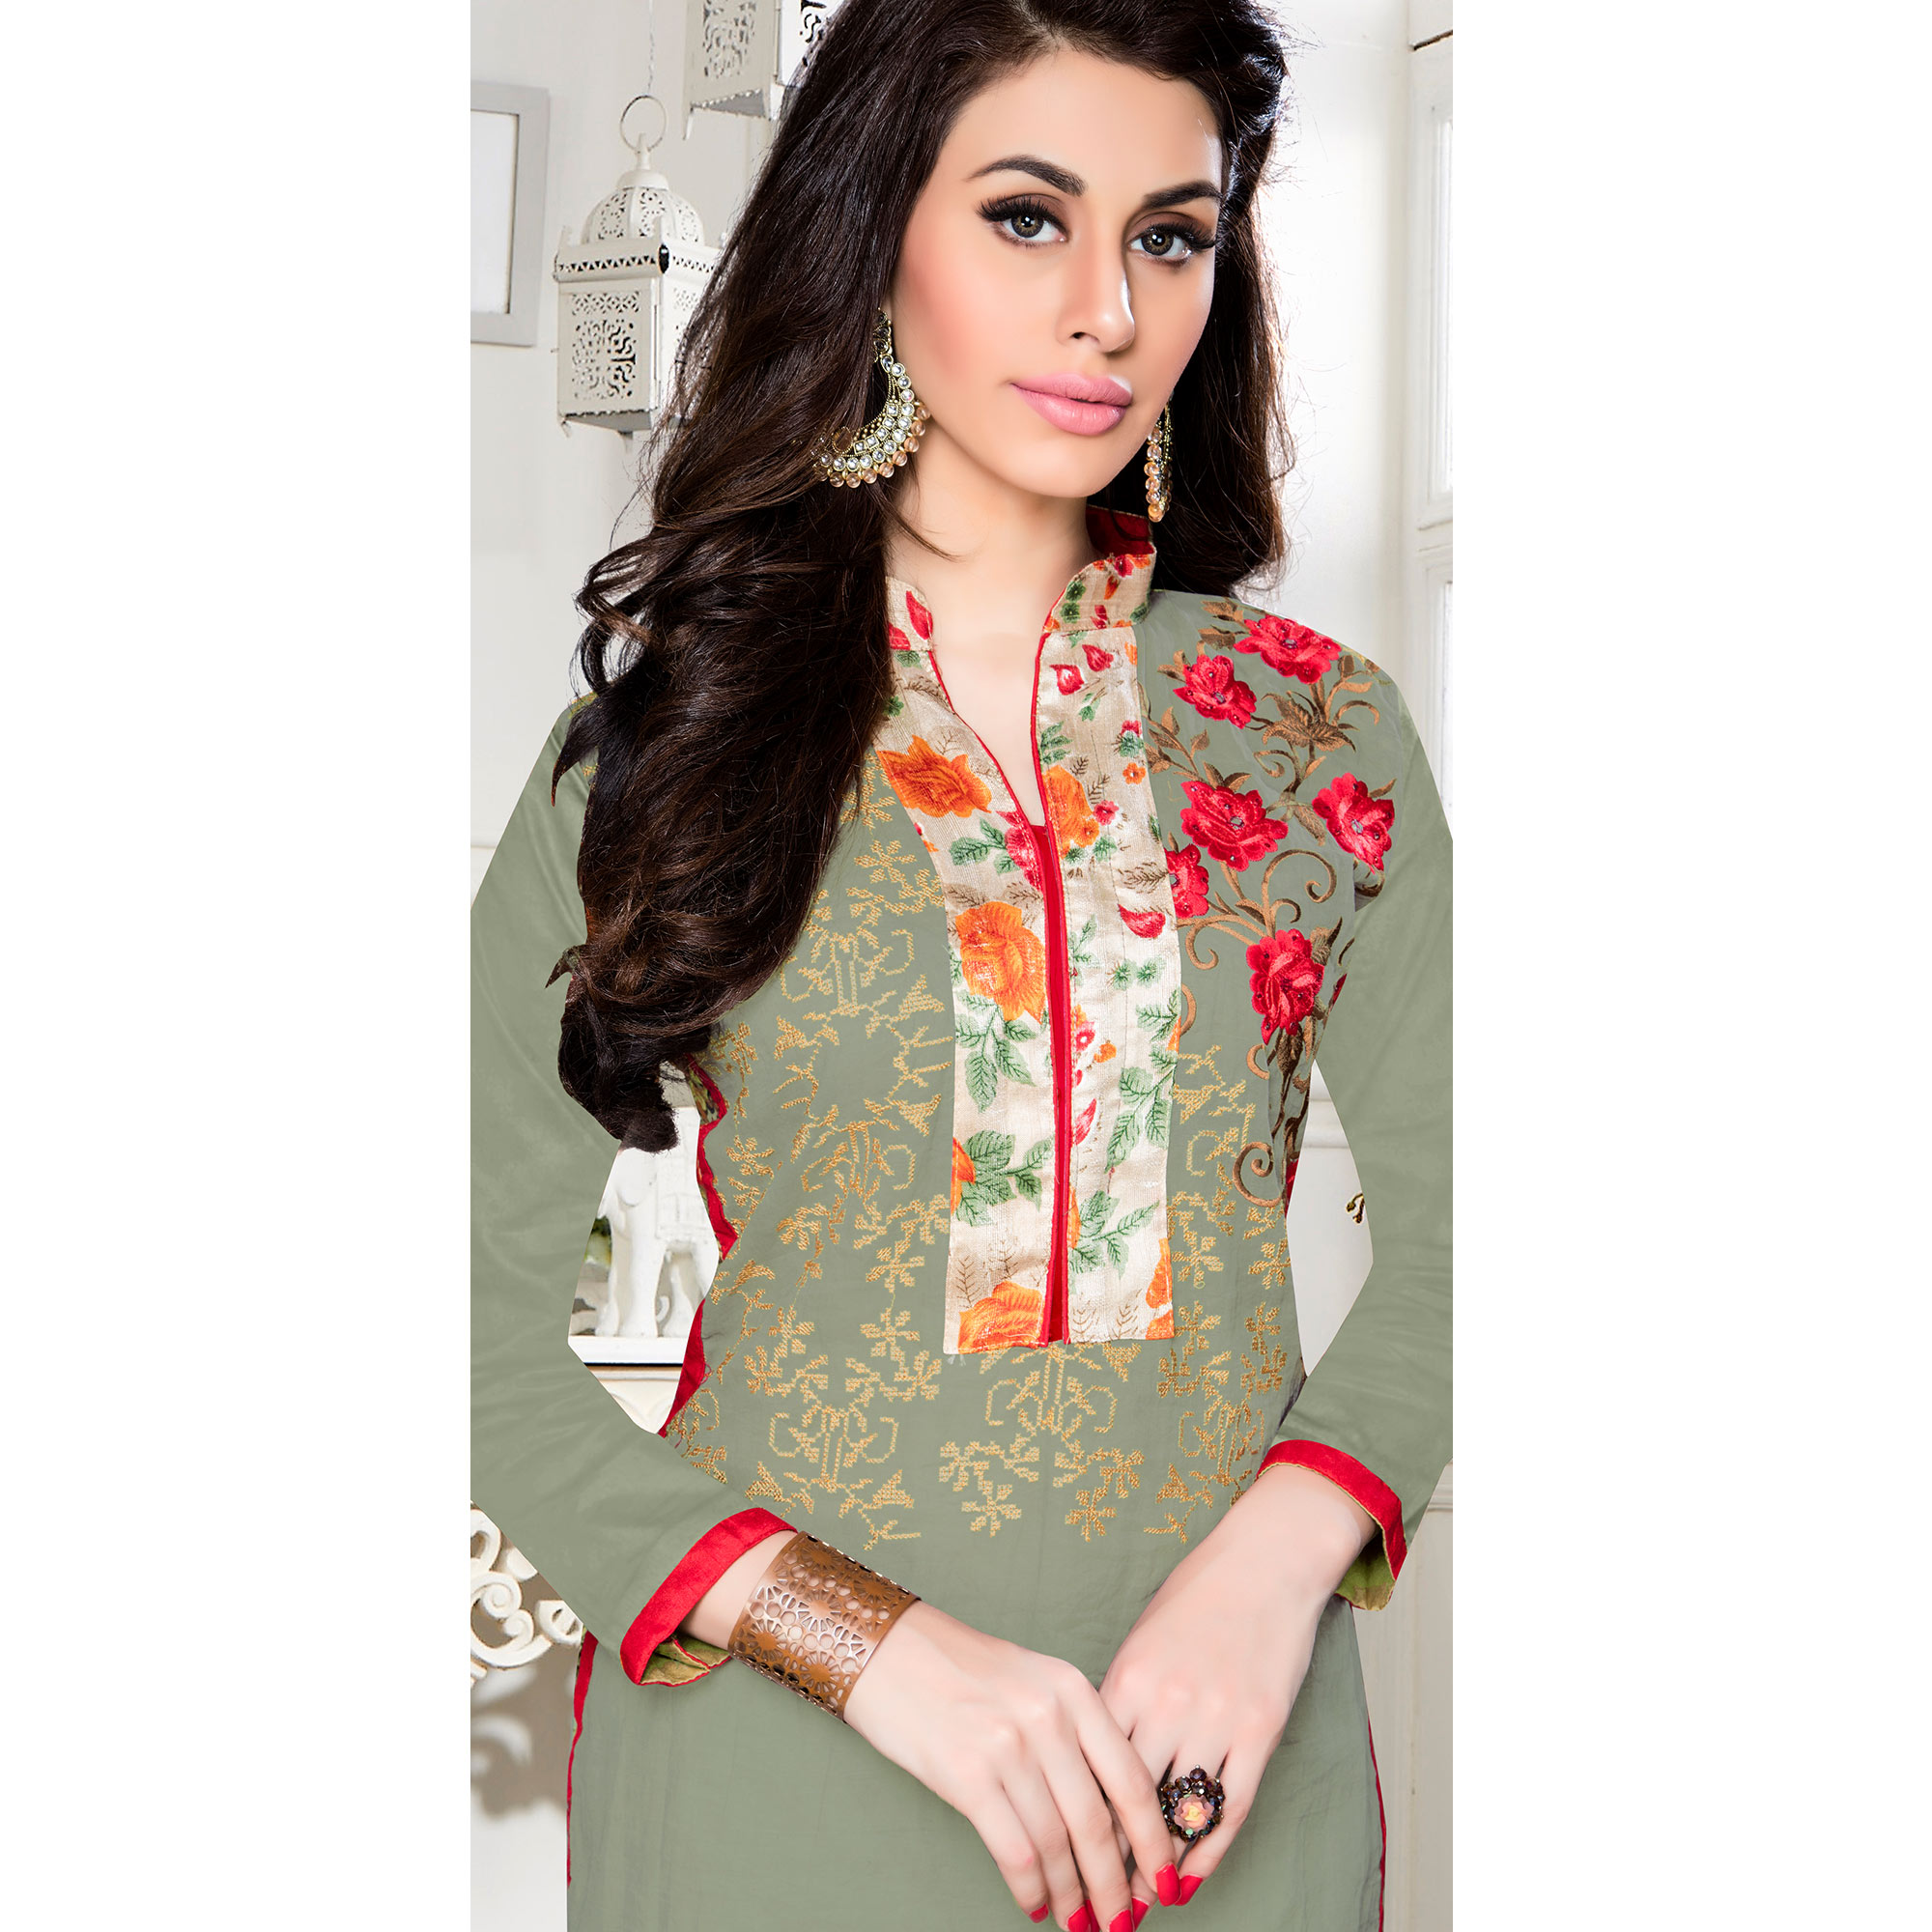 Ravishing Fern Green Colored Party Wear Embroidered Cotton Dress Material